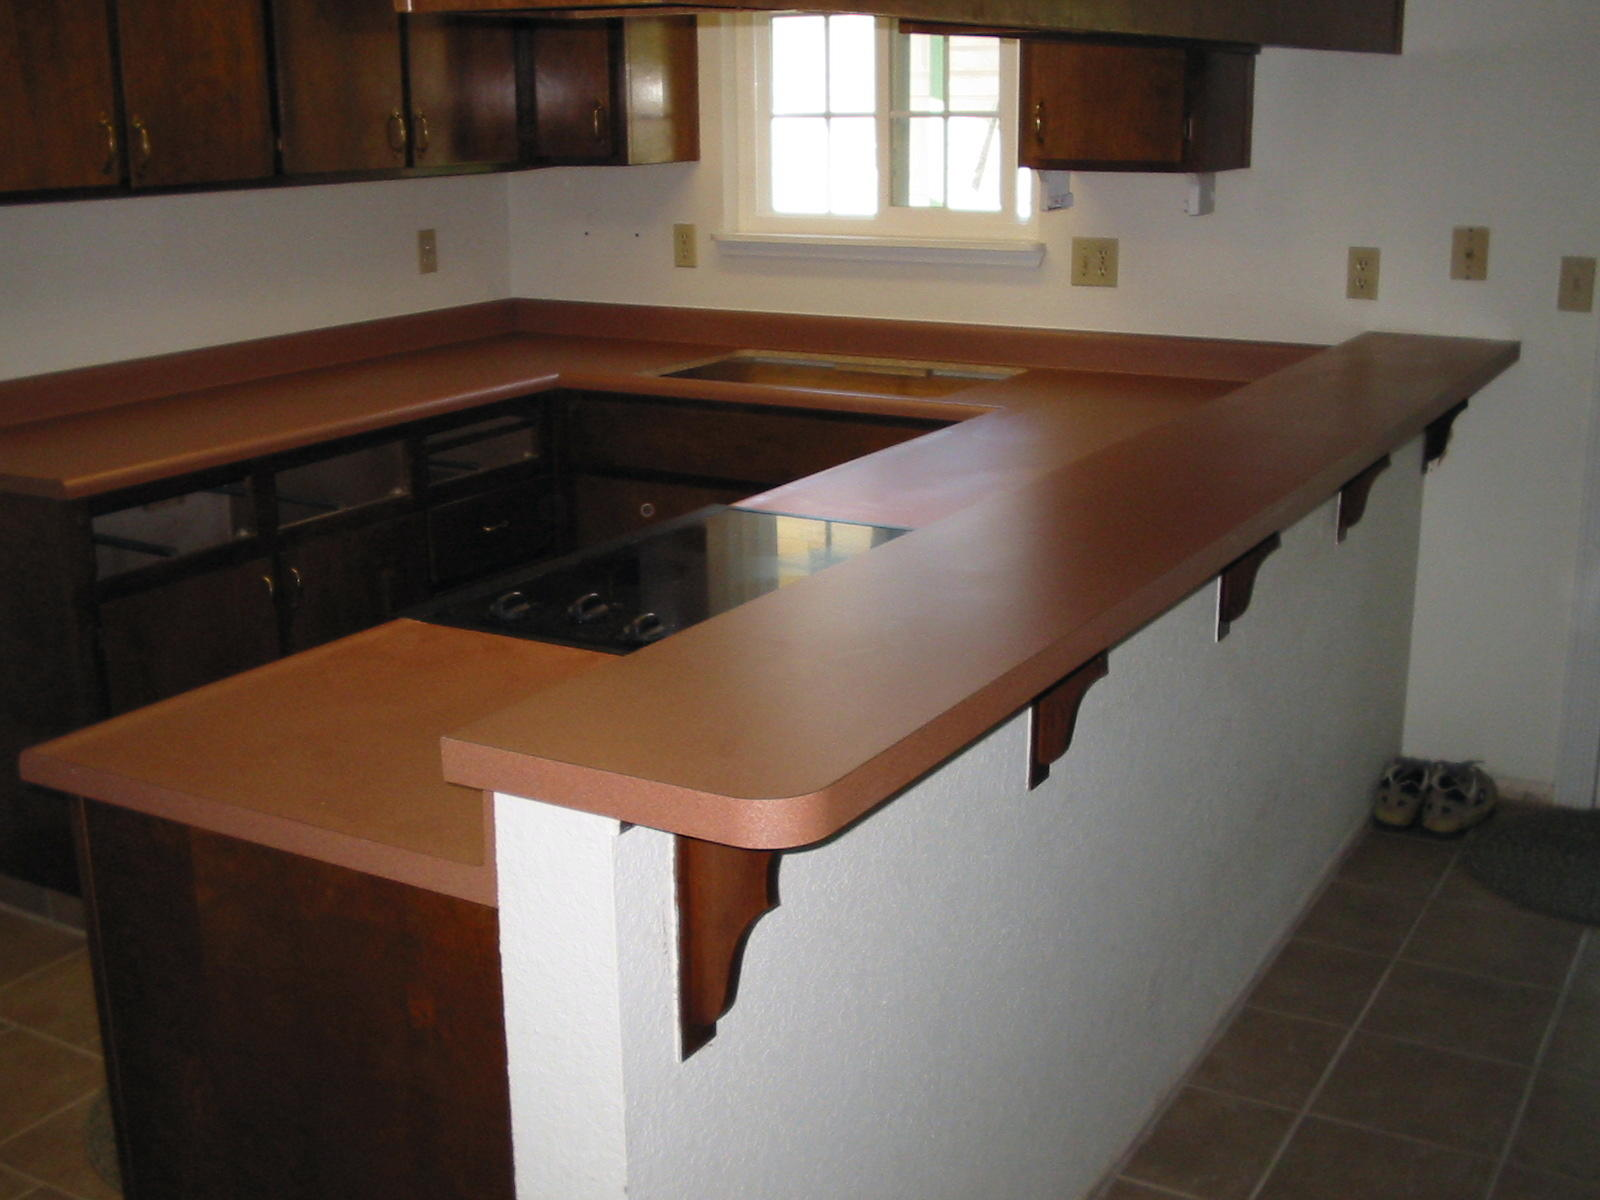 laminate copy ia shop g top cedar countertops the waterloo countertop granite best rapids